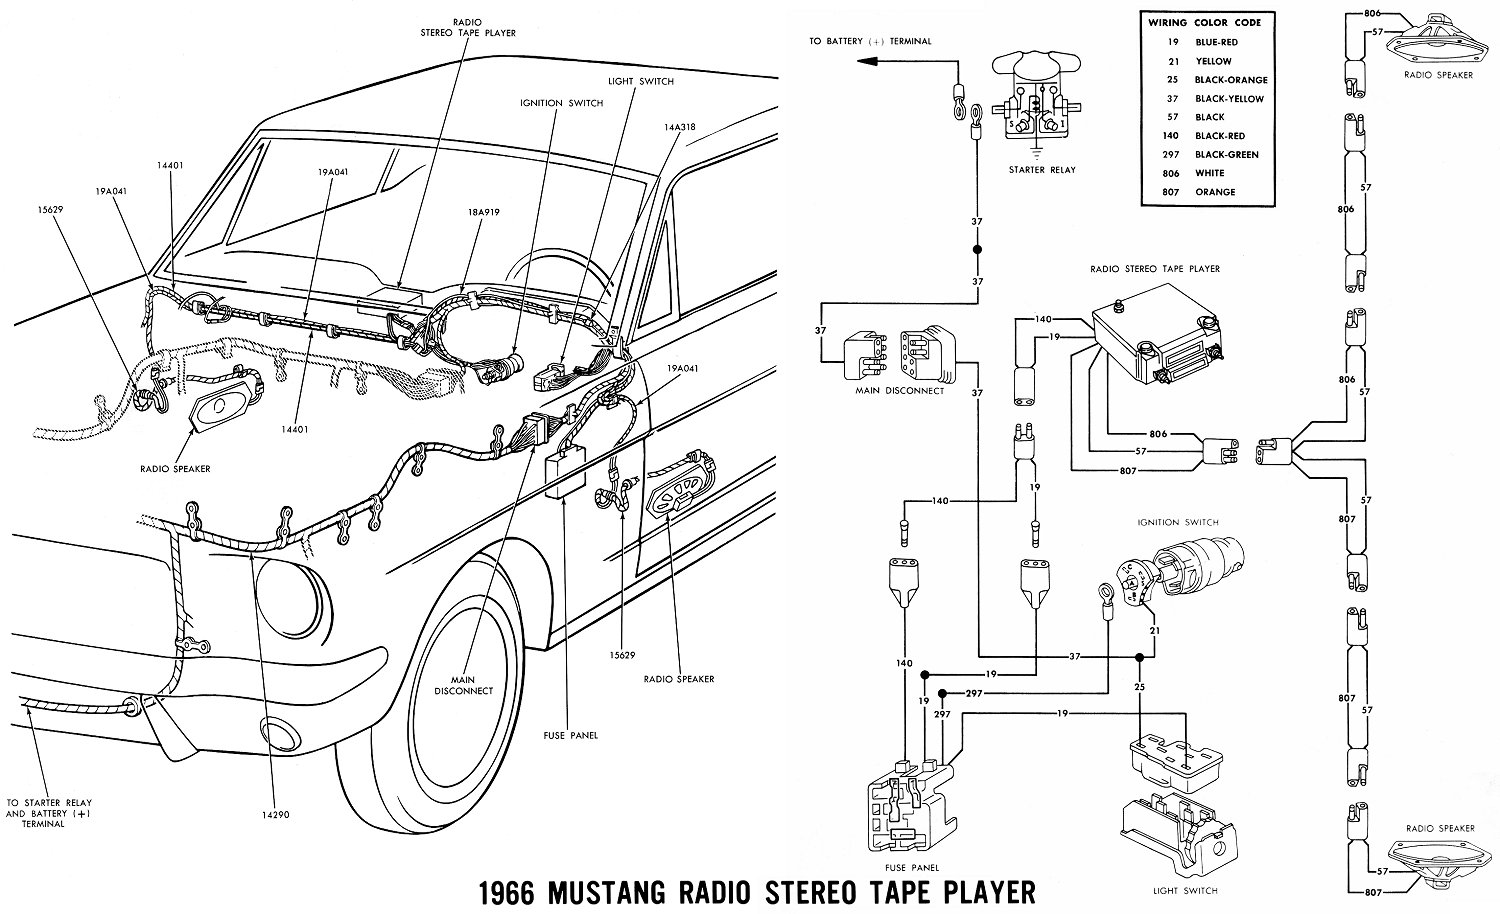 Original 1966 Ford Mustang Engine Diagram Diy Enthusiasts Wiring Grand Prix Diagrams Average Joe Restoration Rh Averagejoerestoration Com Crown Victoria Pontiac